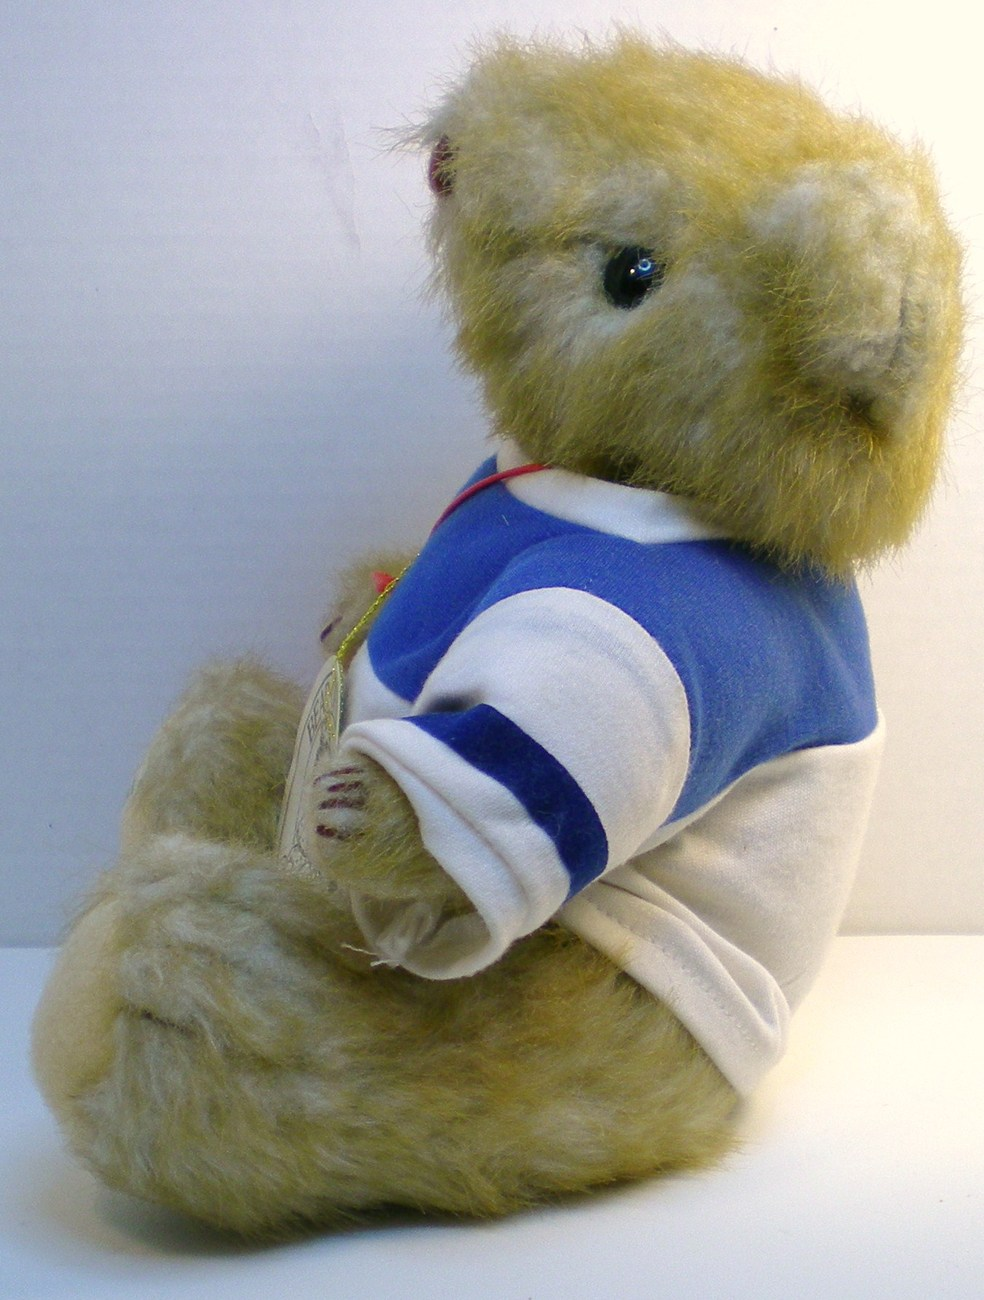 Image 1 of Gorham Teddy Bear of the Month Olympus Octobear 1984 for October